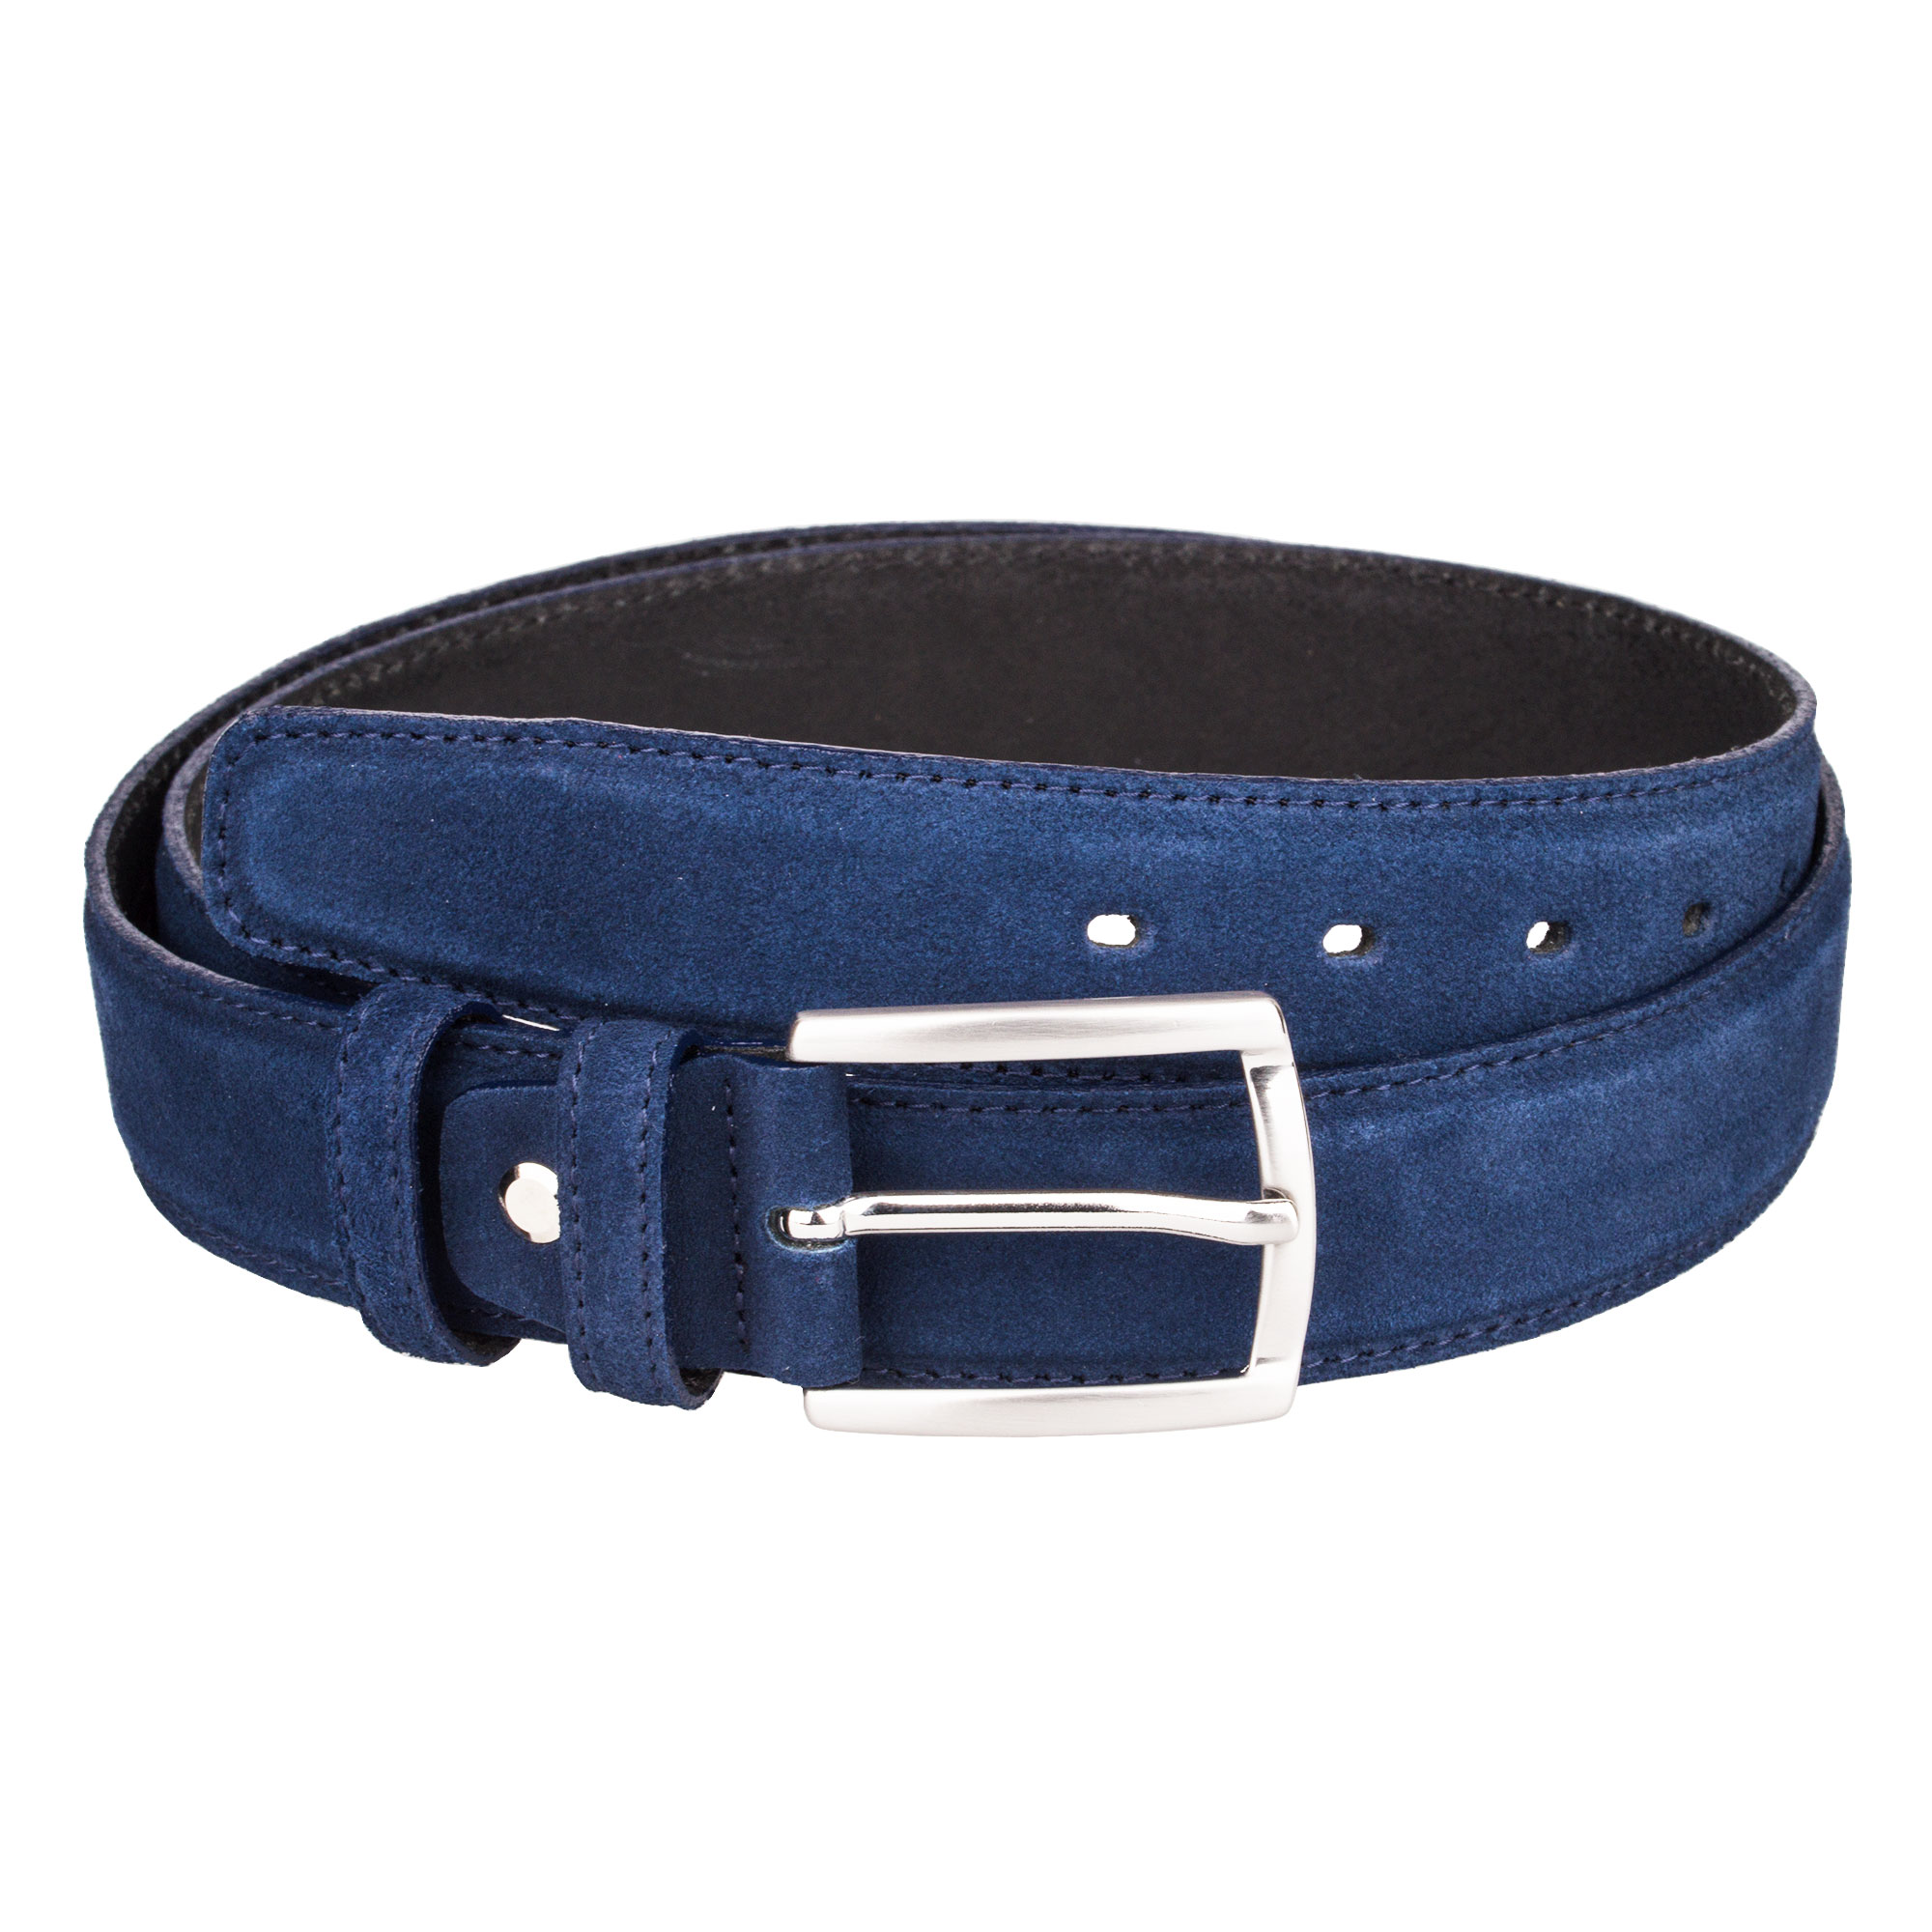 Home / All Belts for Men / Page 1 of 1 All Belts for Men. Shop our full collection of men's belts. Sort by dress or casual, leather, suede or cotton, and all of our different colors. The Suit $ The Fund $ Blue Belts; Green Belts; Grey Belts;.